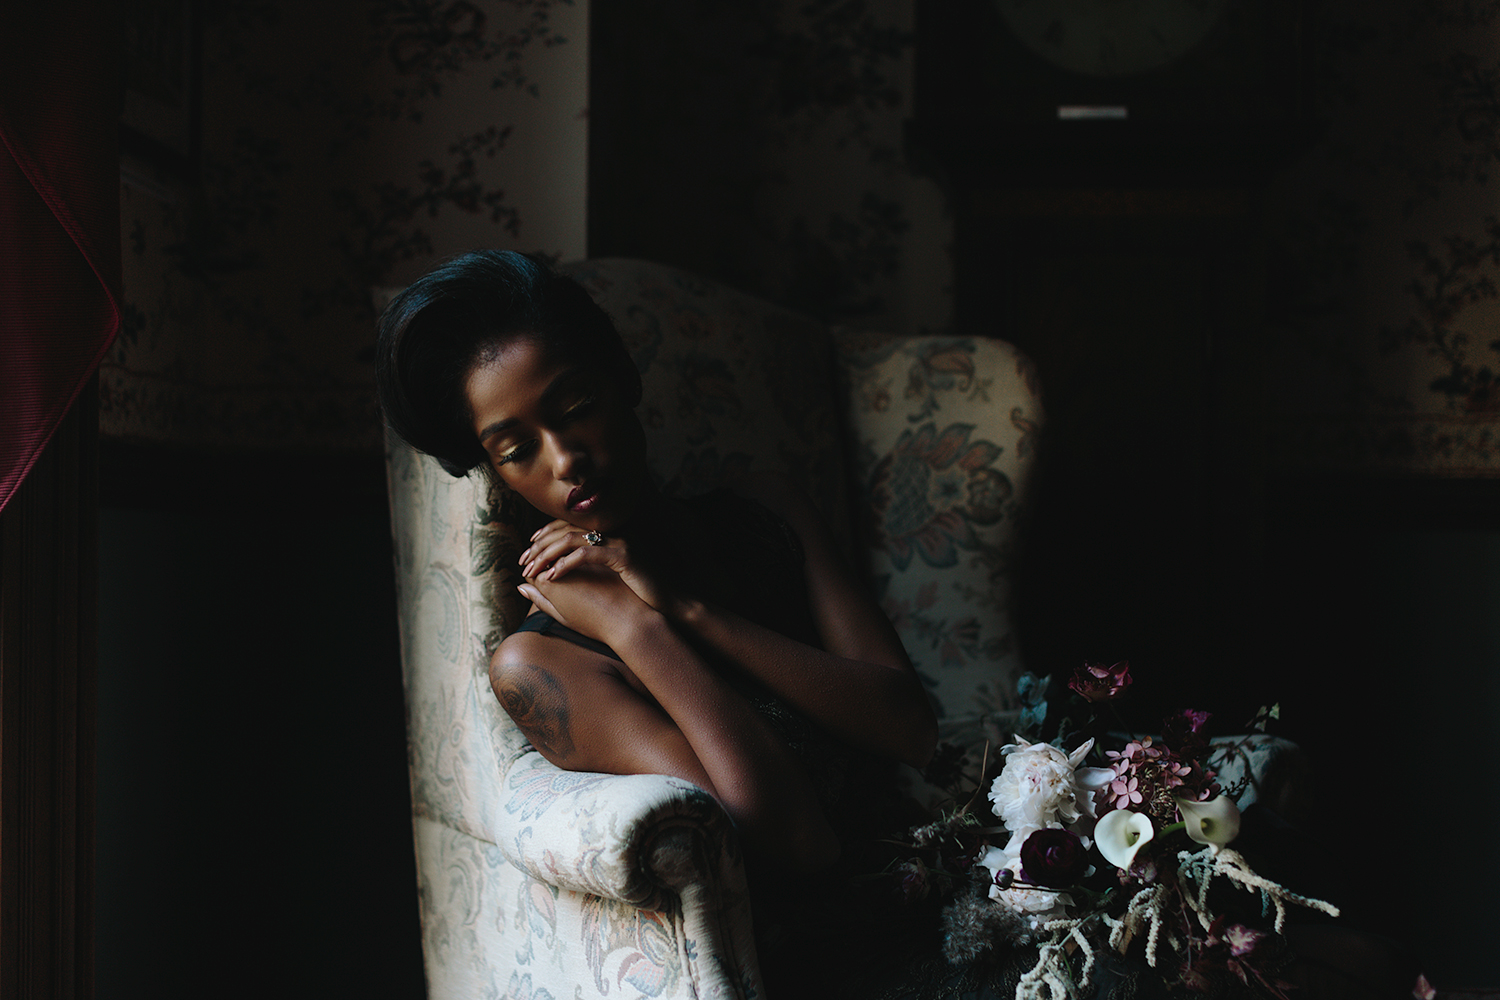 ryanne-hollies-photography-campbell-house-stylized-shoot-stairwell0wallpaper-editorial-high-fashion-portrait-vintage-bride-timeless-old-school-chair-hair-details-puzzle-creations-florals-hunt-and-gather.jpg